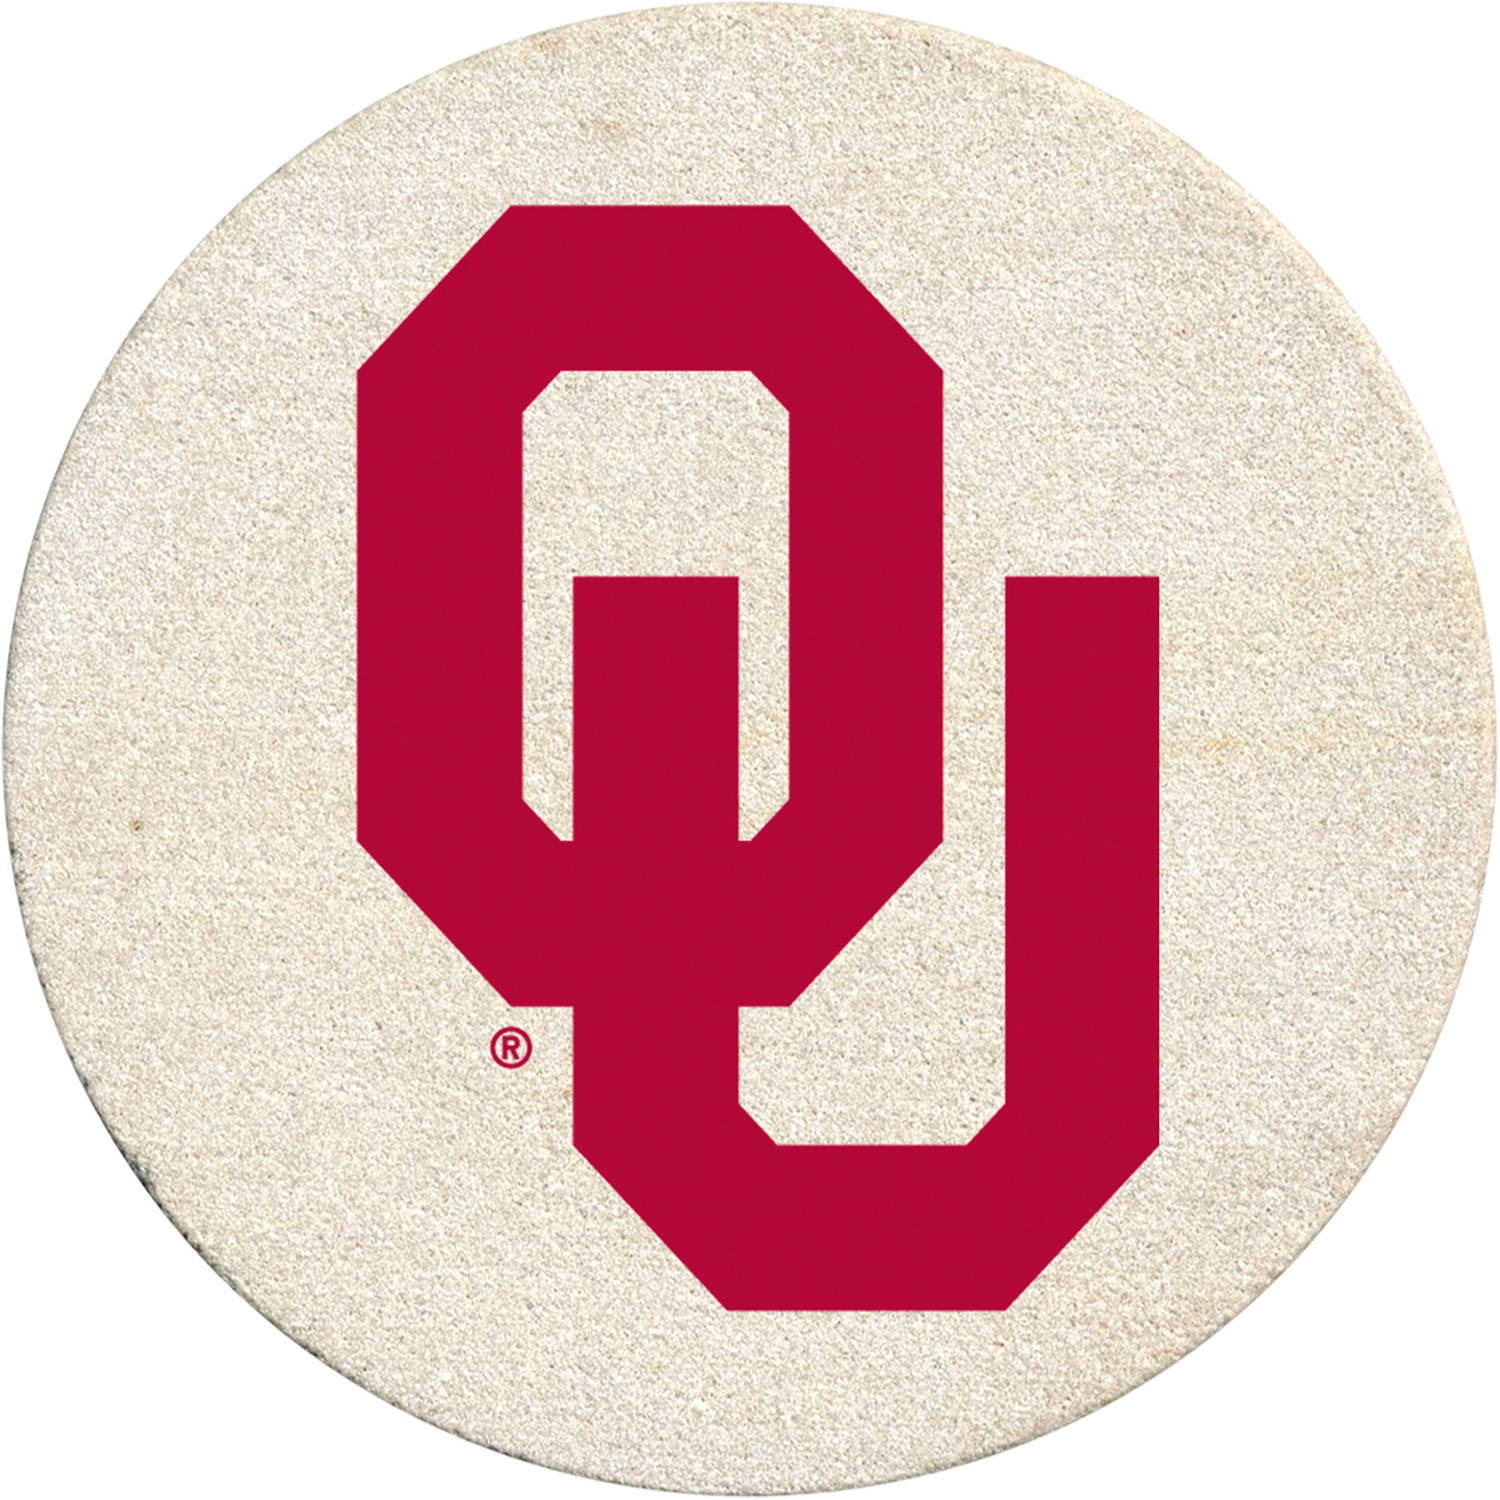 Thirstystone Drink Coaster Set, University of Oklahoma